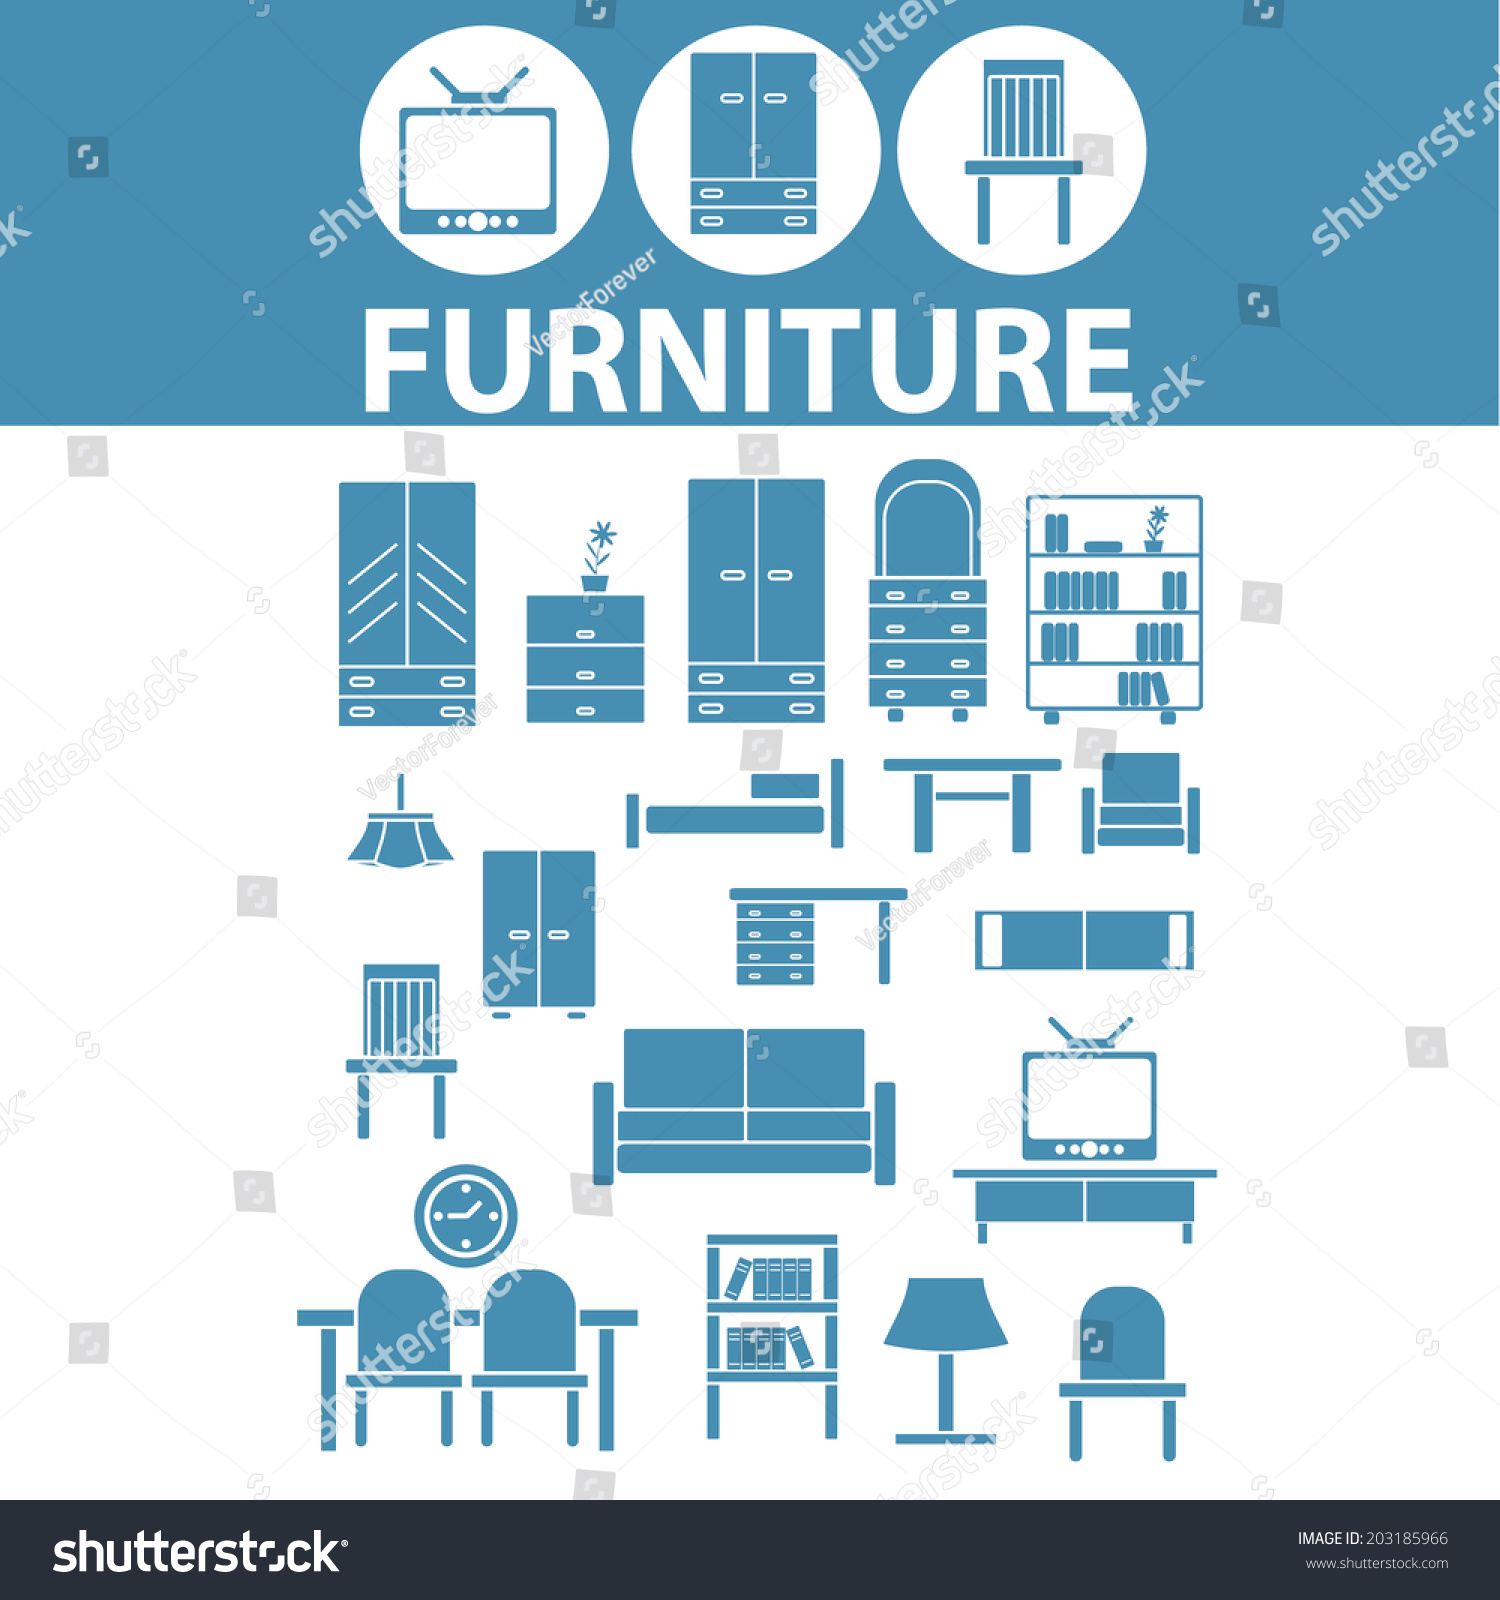 Interior Design Furniture Symbols ~ Furniture interior design icons signs symbols stock vector